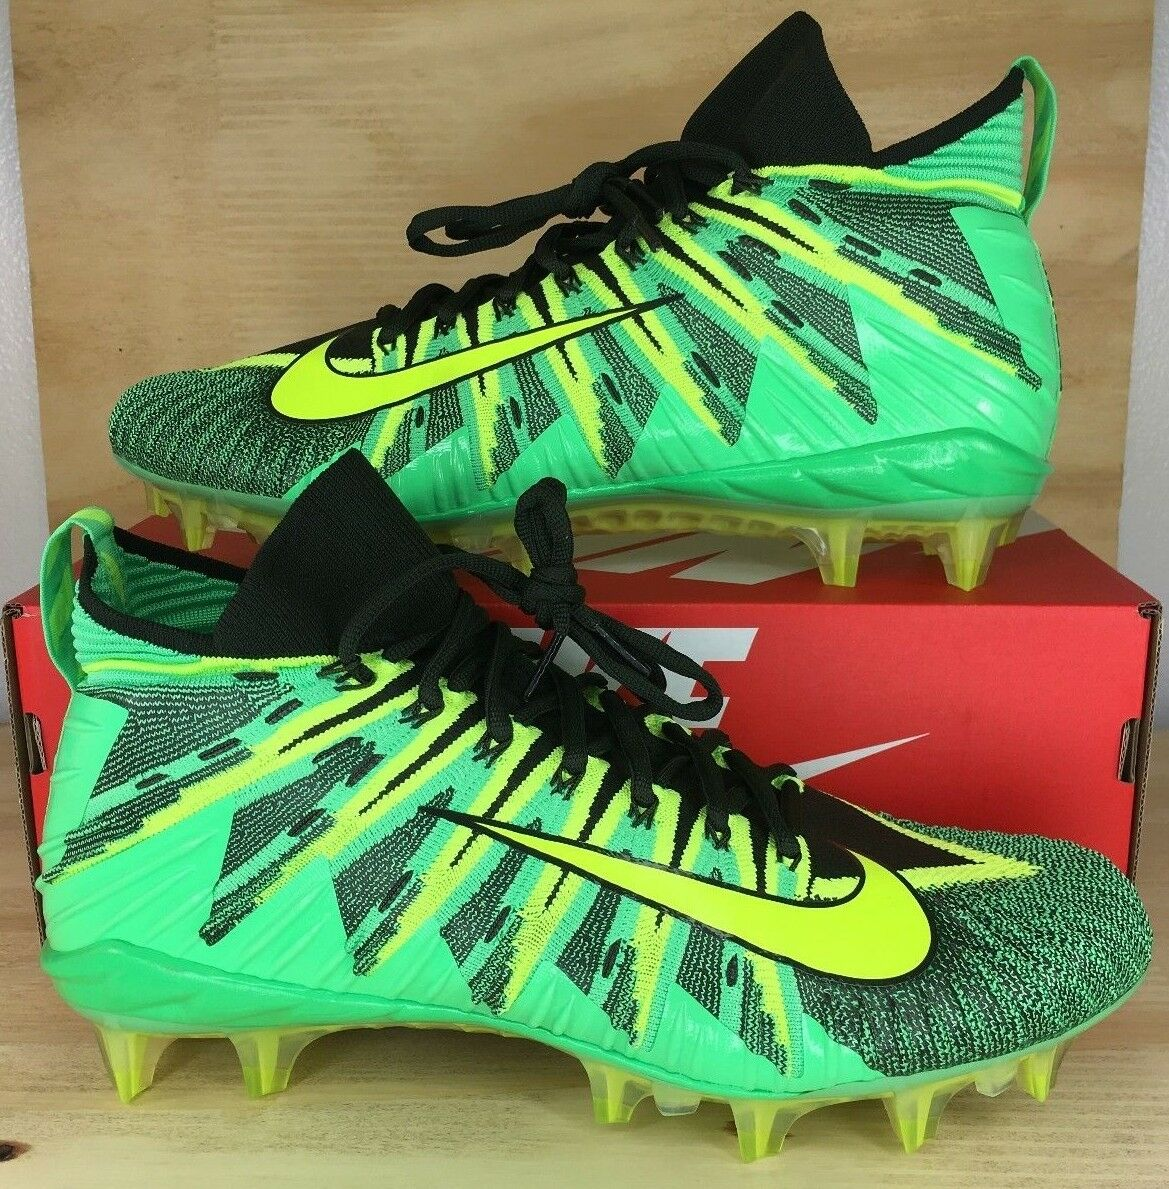 Nike Alpha Menace Elite Football Cleats Green Volt Black 871519-337 SZ 10.5